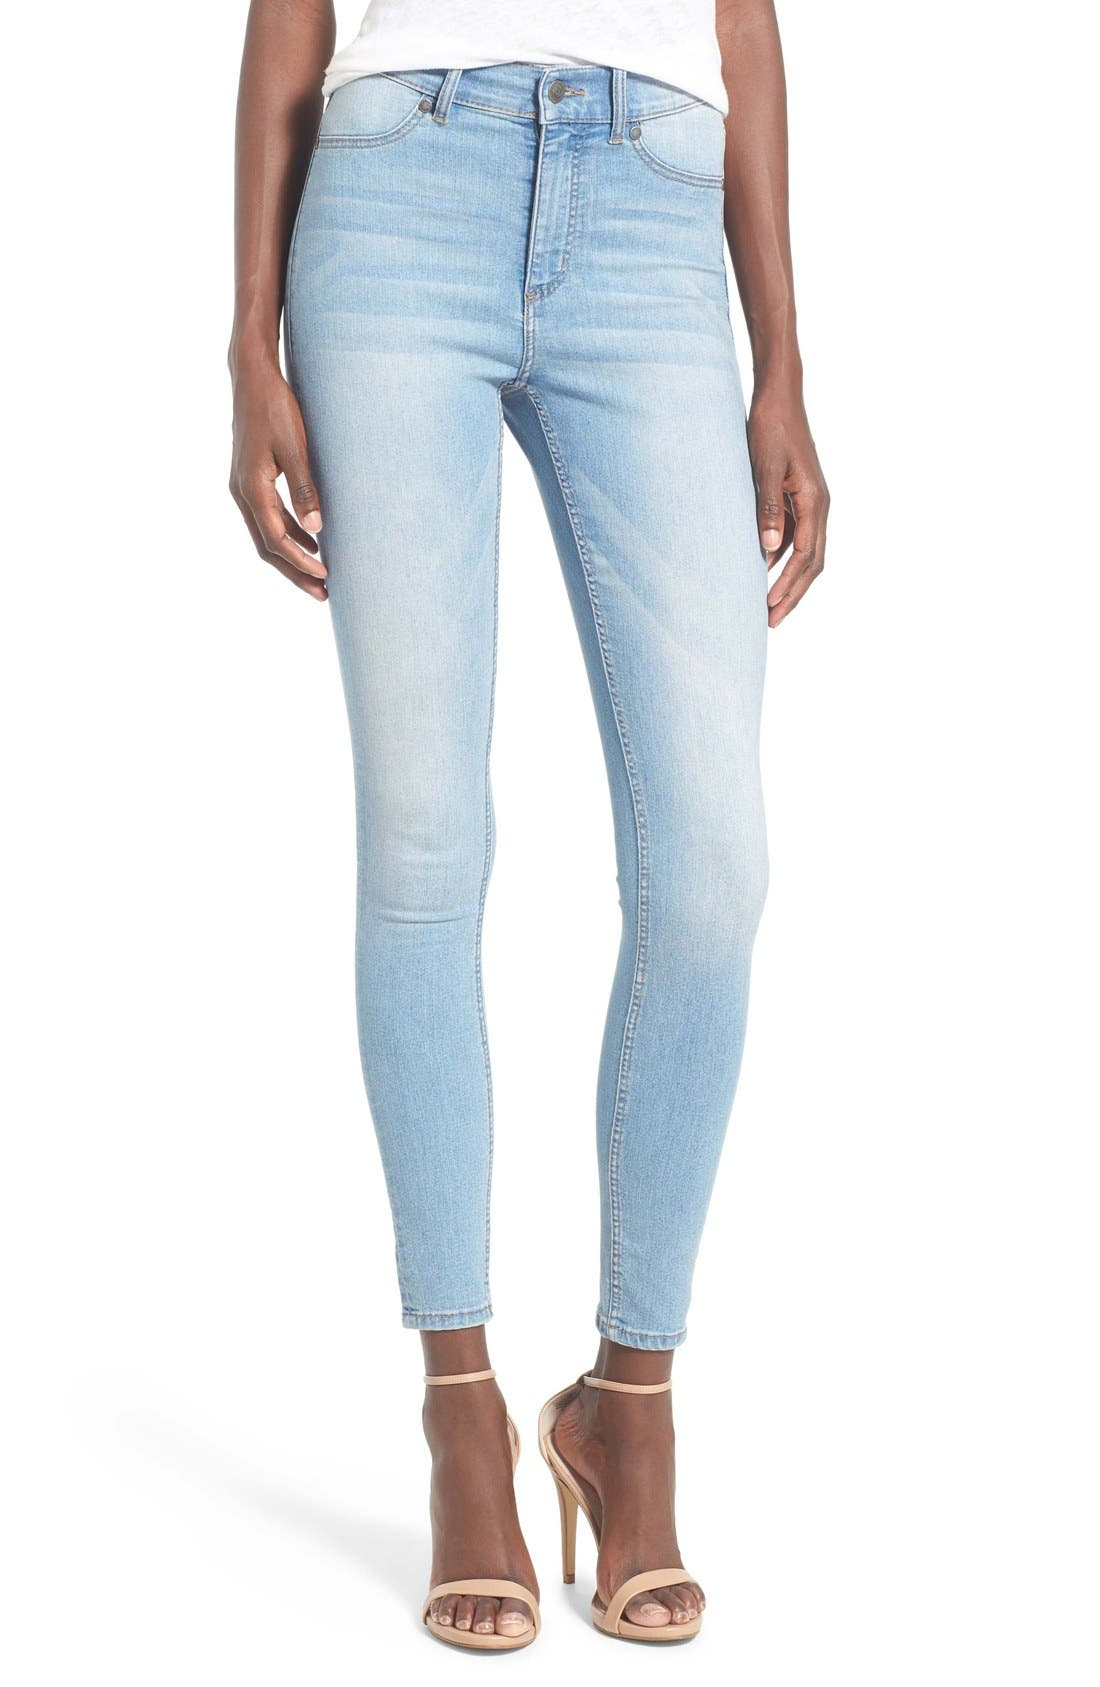 Alternate Image 1 Selected - Cheap Monday 'High Spray' High Rise Skinny Jeans (Stone Bleach)